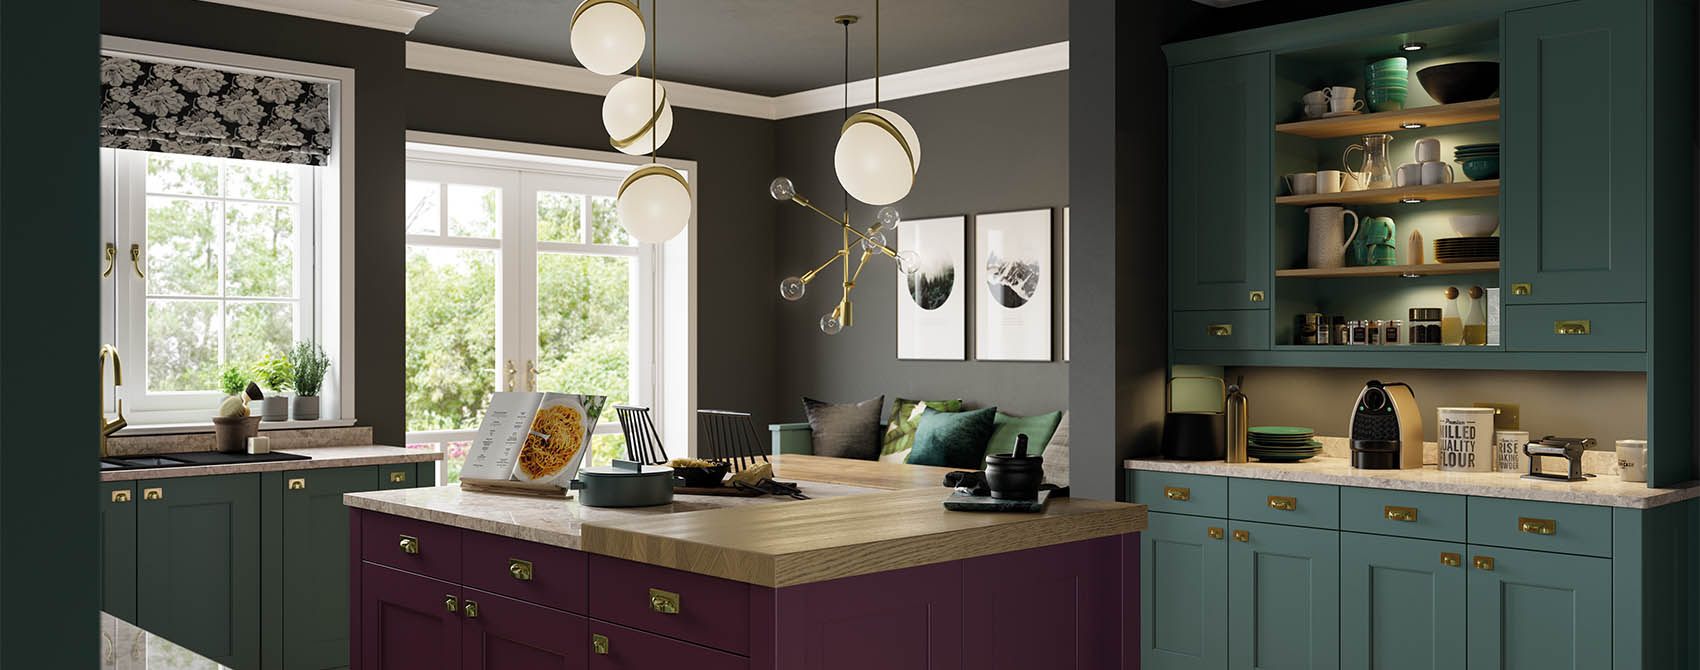 lick painted kitchen